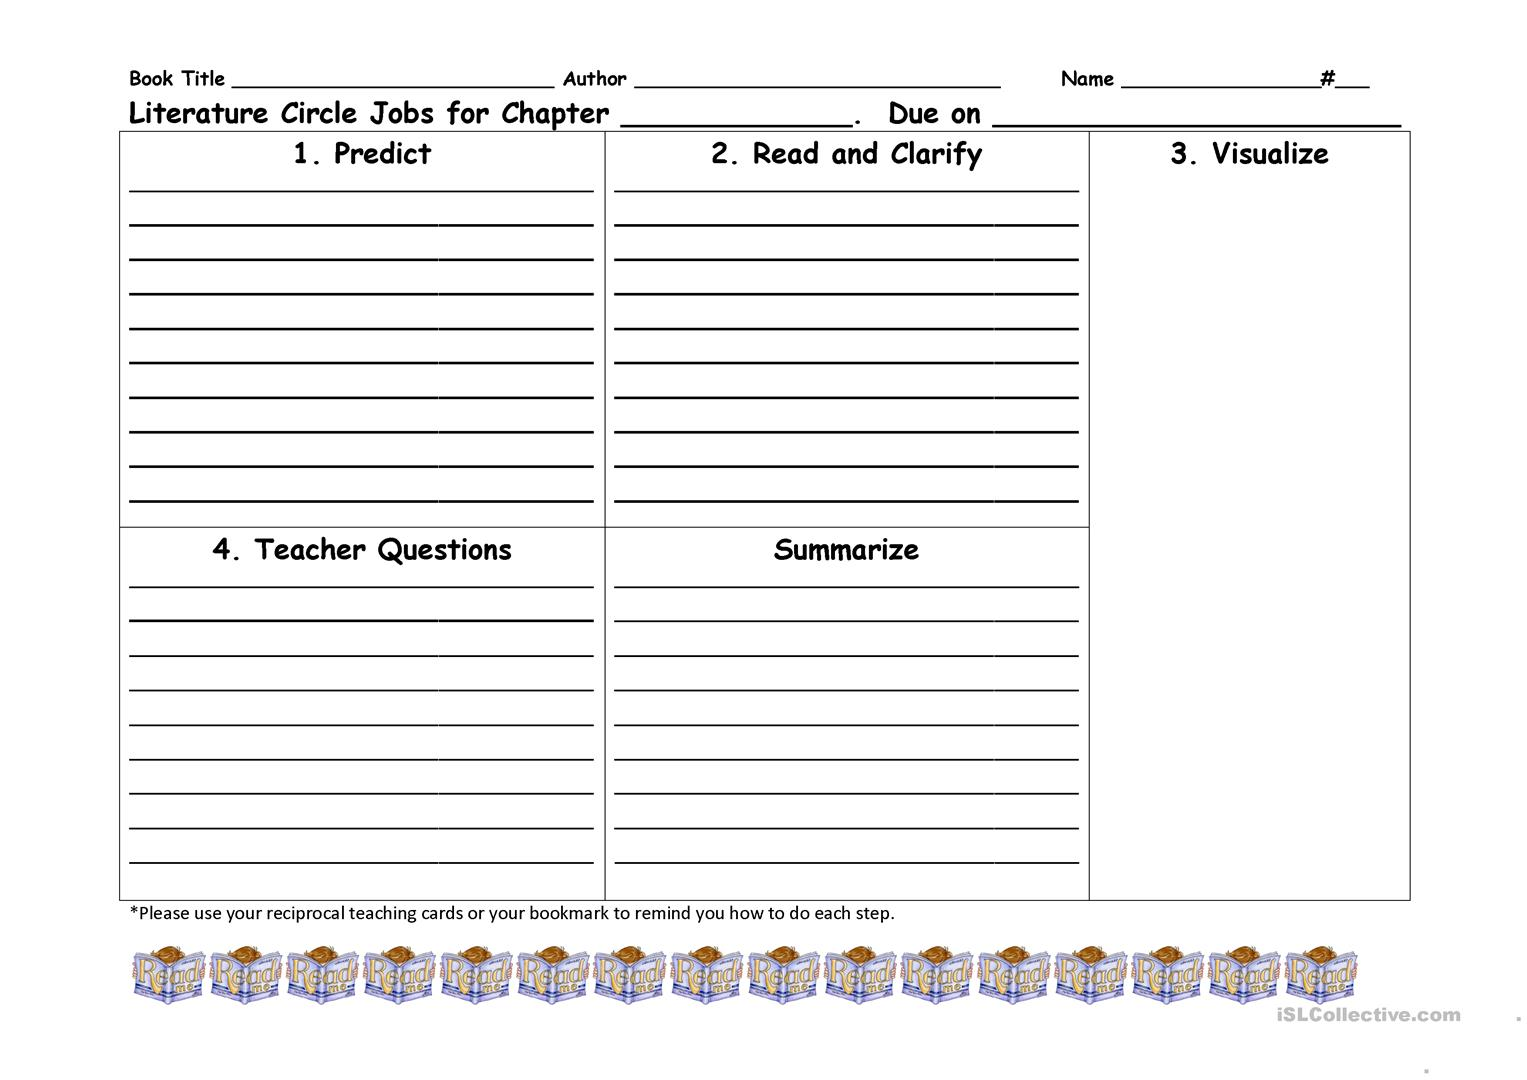 Reciprocal Teaching Literature Circle Worksheet Worksheet